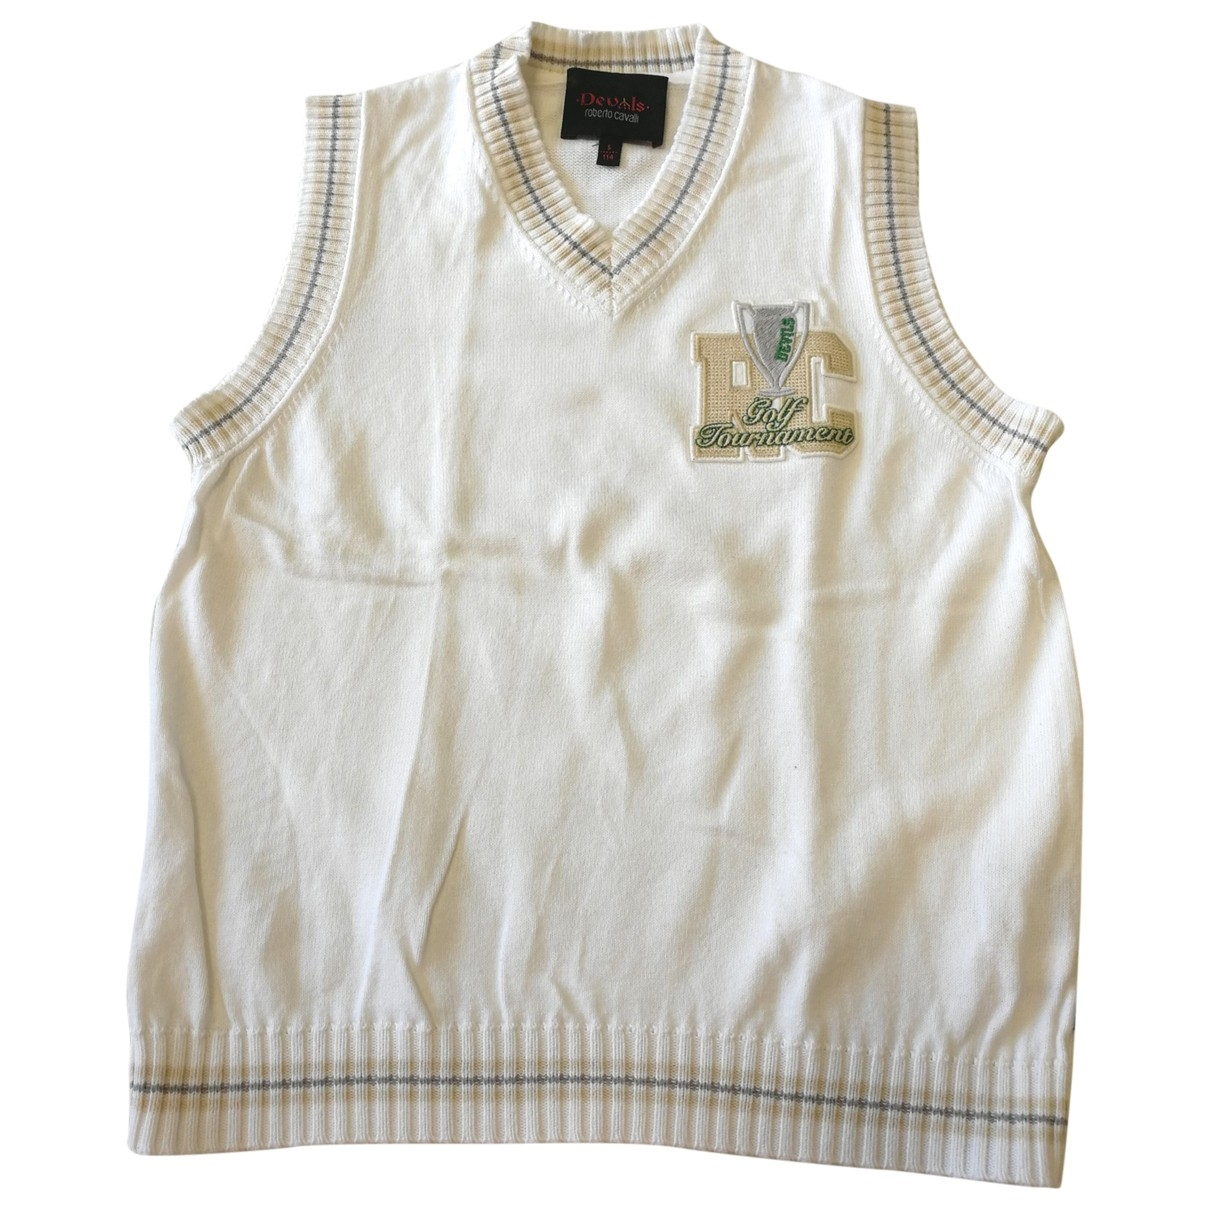 Roberto Cavalli \N White Cotton Knitwear for Kids 5 years - up to 108cm FR